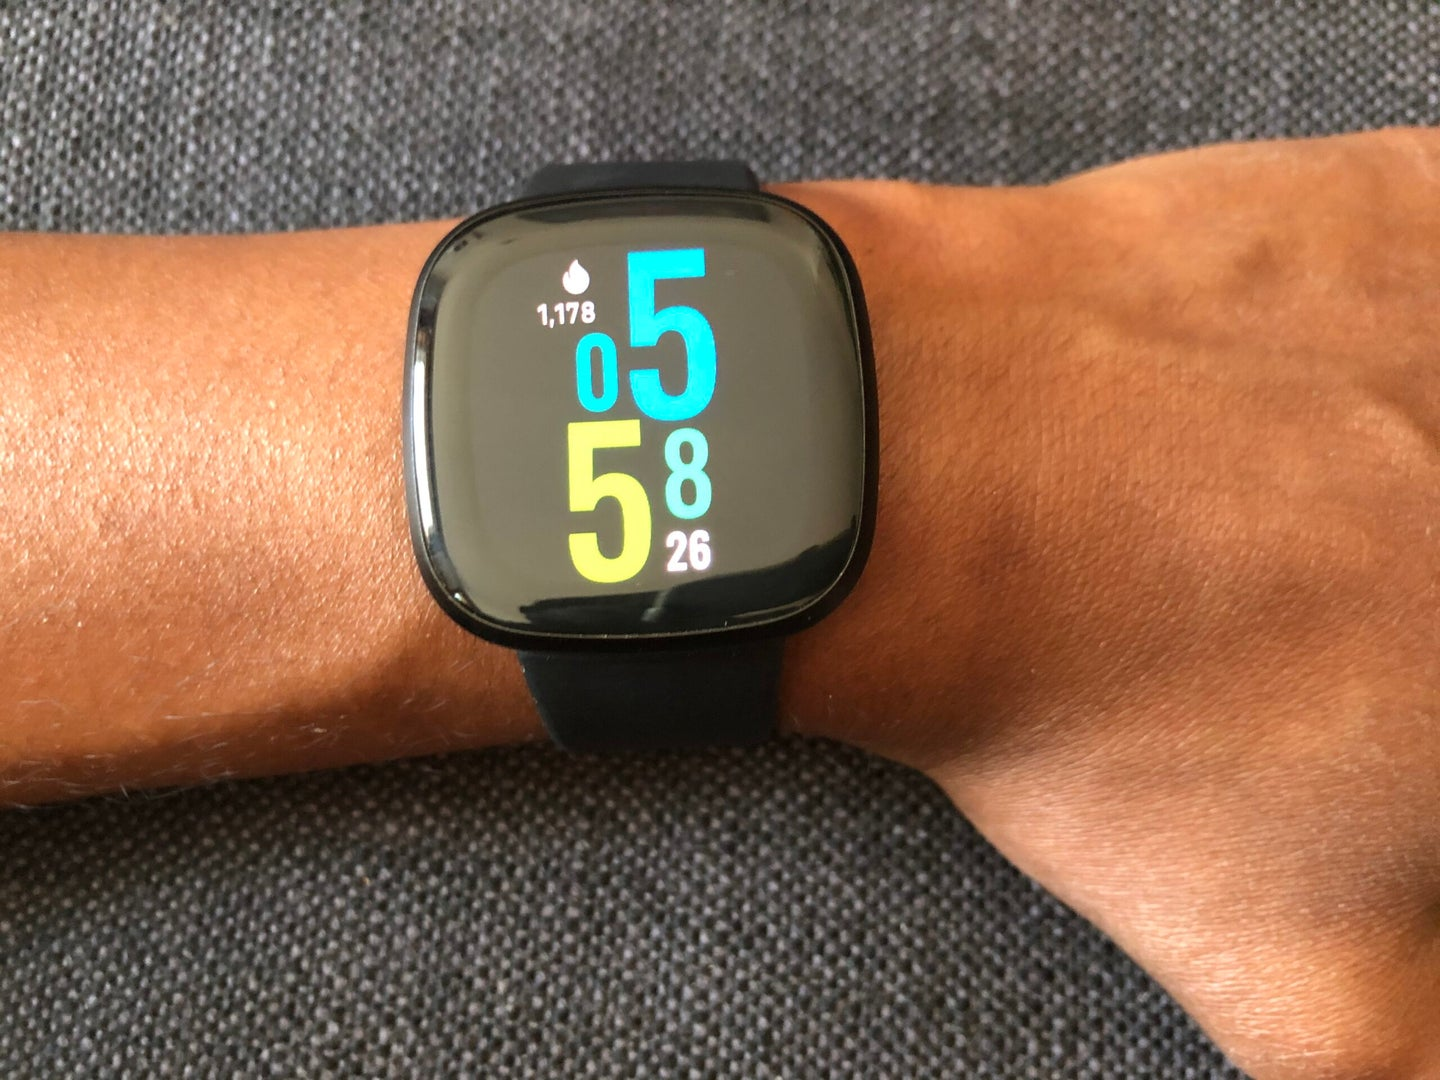 The Fitbit Versa 3 colorful always-on display